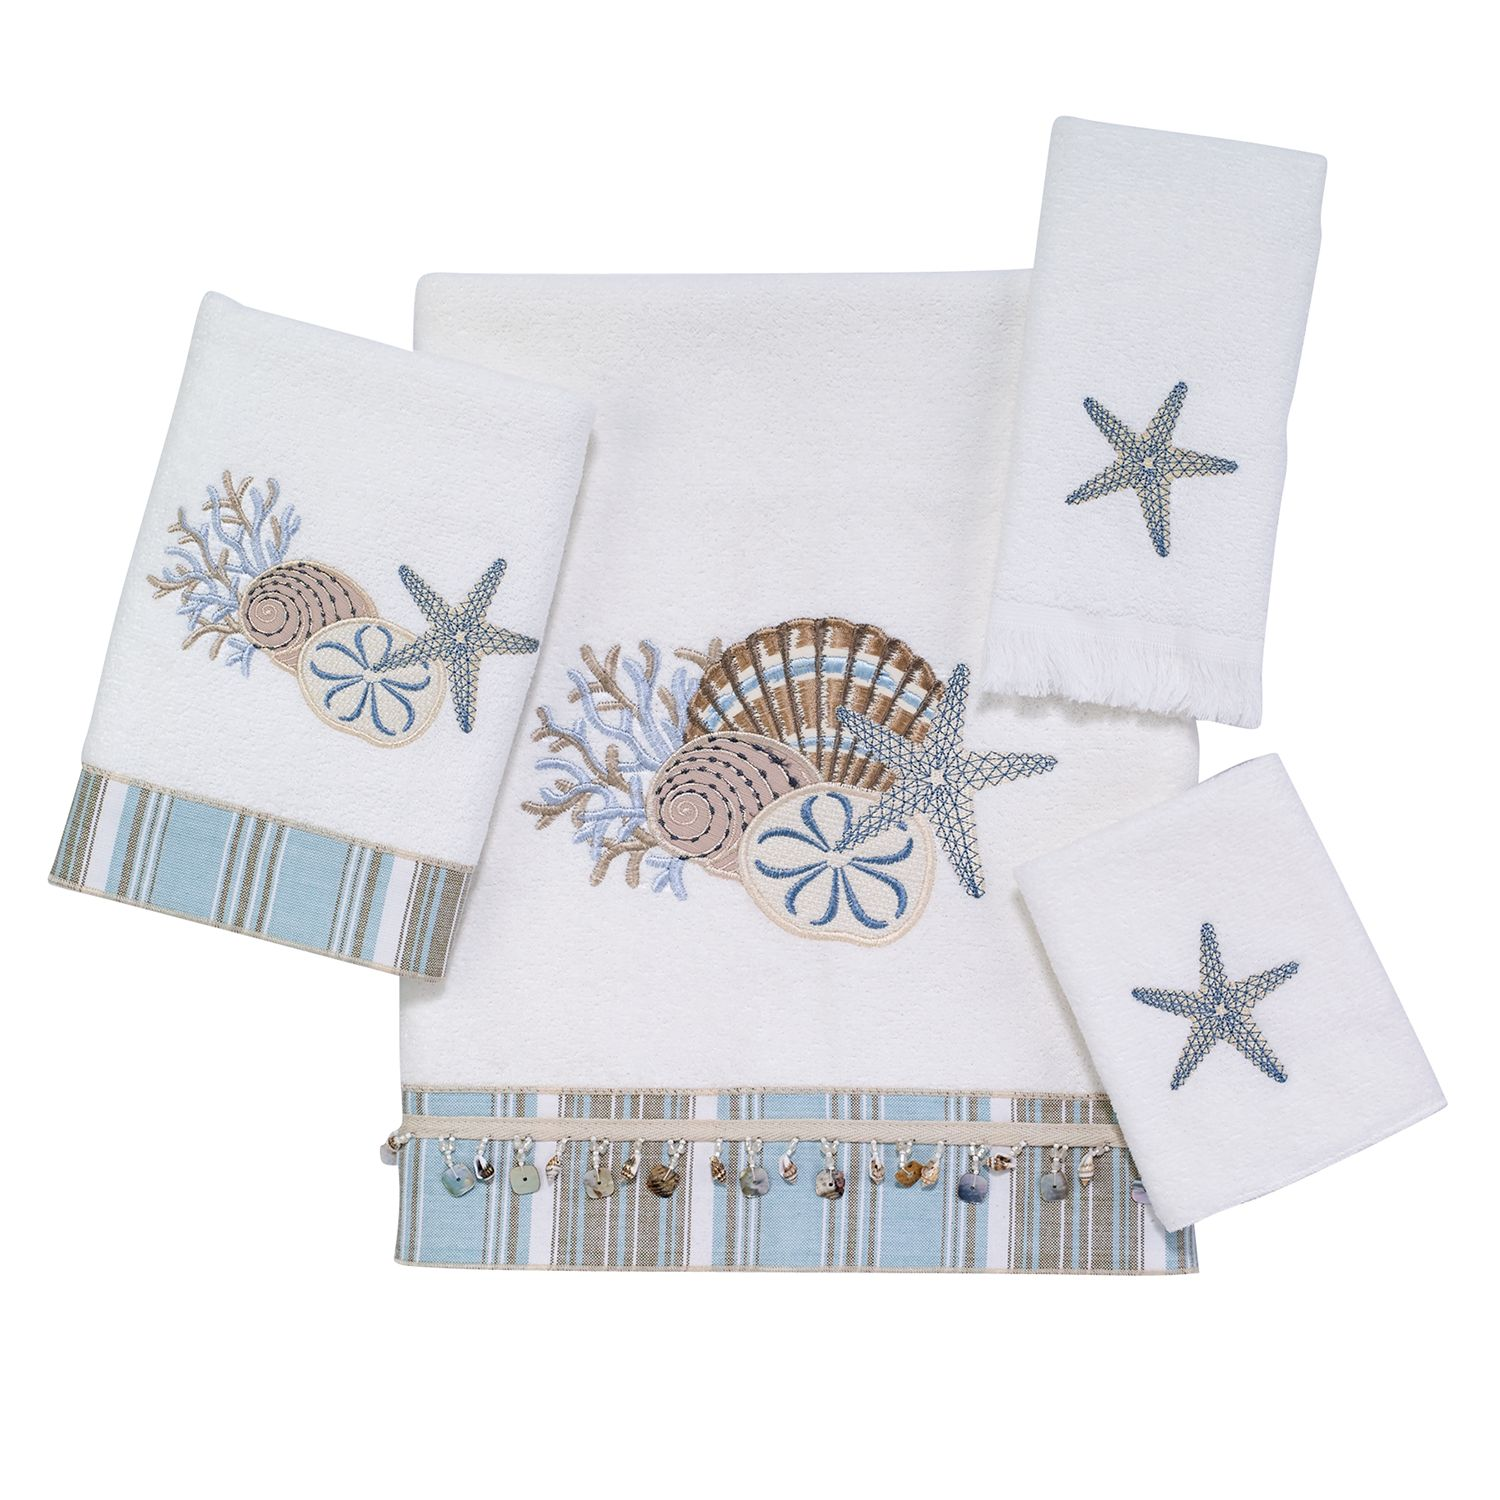 avanti by the sea bath towels - Fingertip Towels